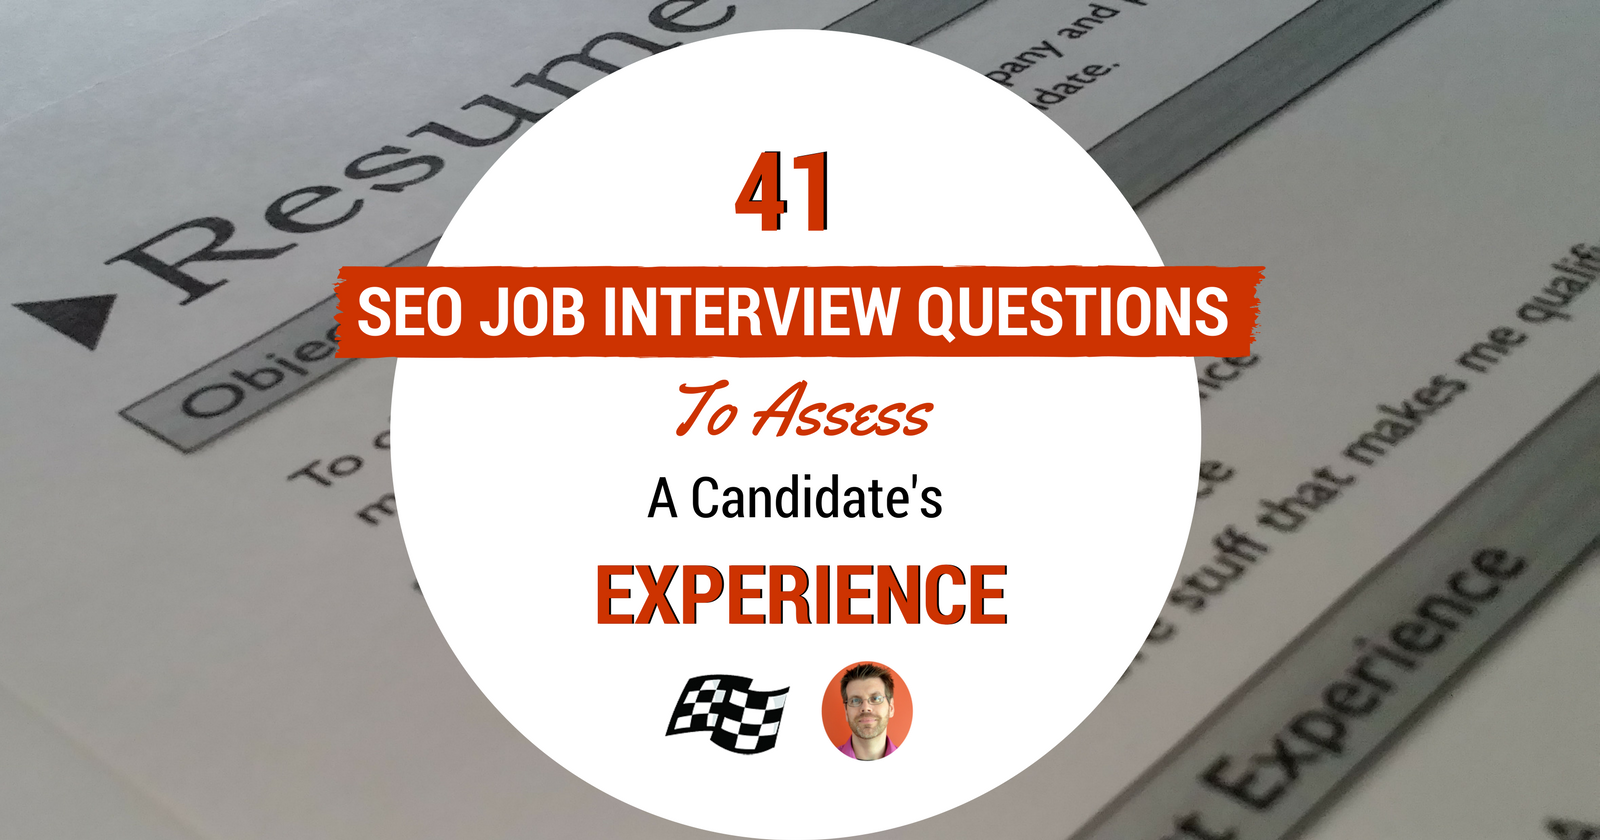 41 of the Best SEO Job Interview Questions - Search Engine Journal